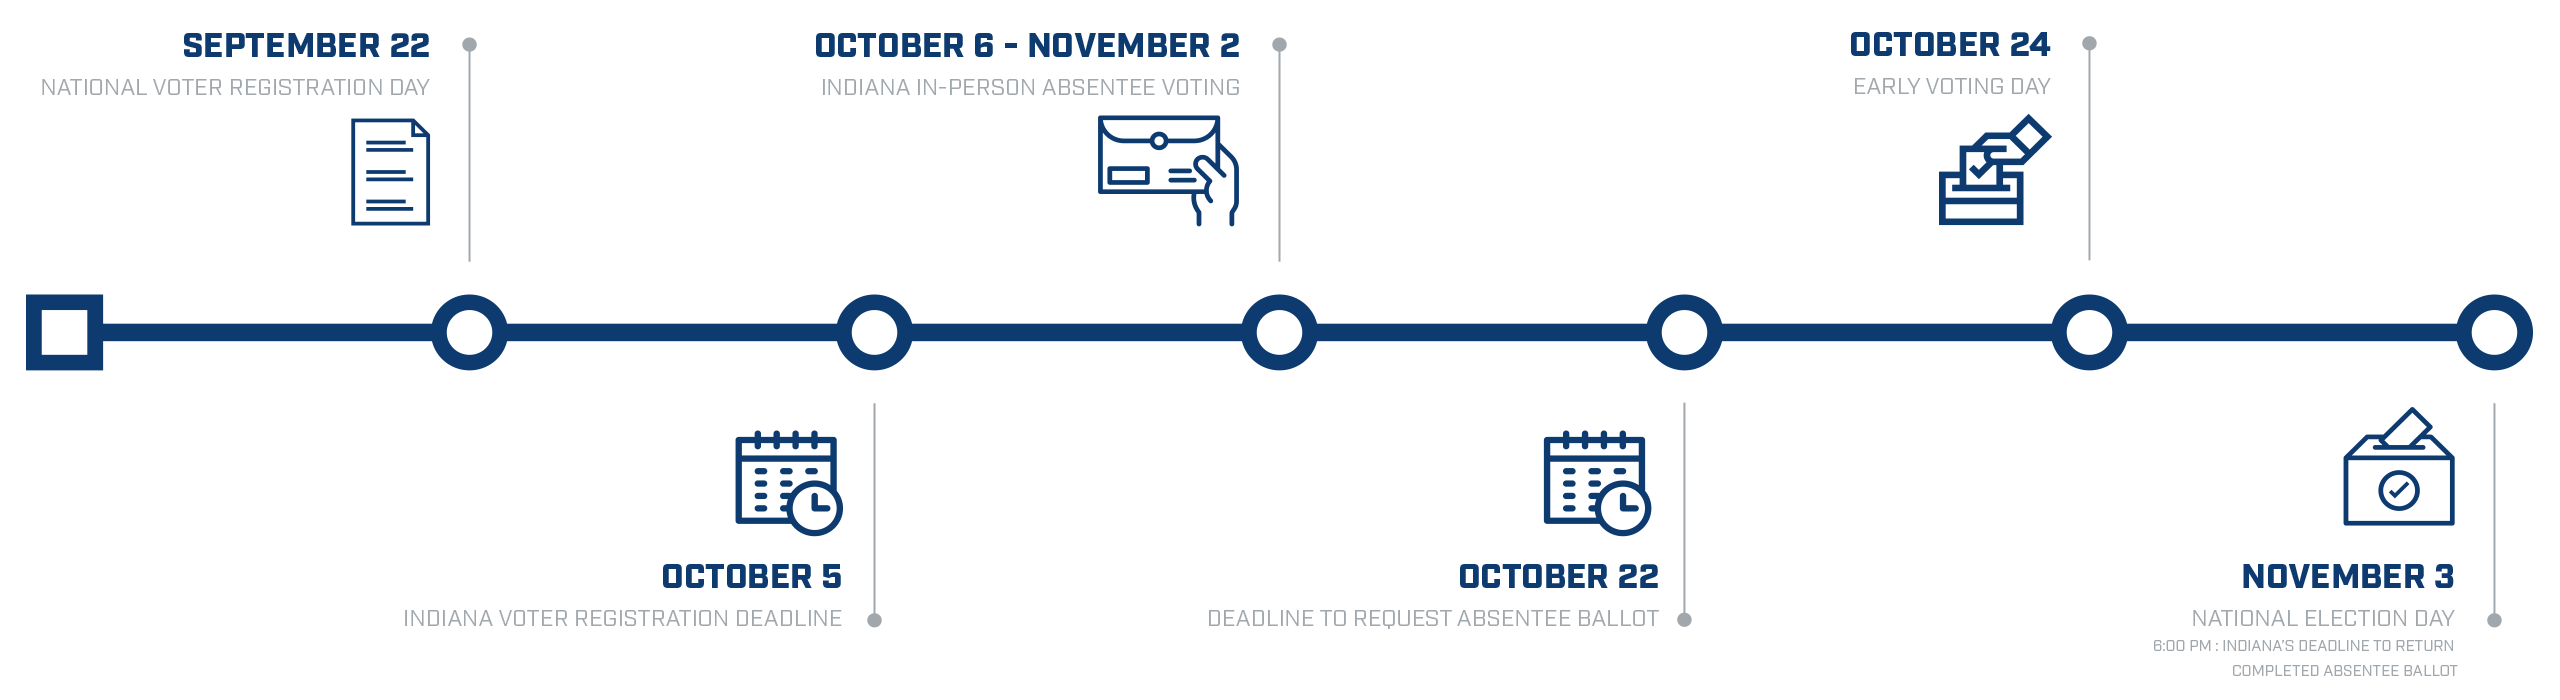 Indianapolis Colts For The Future:  \- September 22: National Voter Registration Day  \- October 5: Indiana Voter Registration Deadline  \- October 6 > November 2: Indiana In-Person Absentee Voting  \- October 22: Deadline to request absentee ballot  \- October 24: Early Voting Day  \- November 3: National Election Day (6:00 PM: Indiana's deadline to return completed absentee ballot)